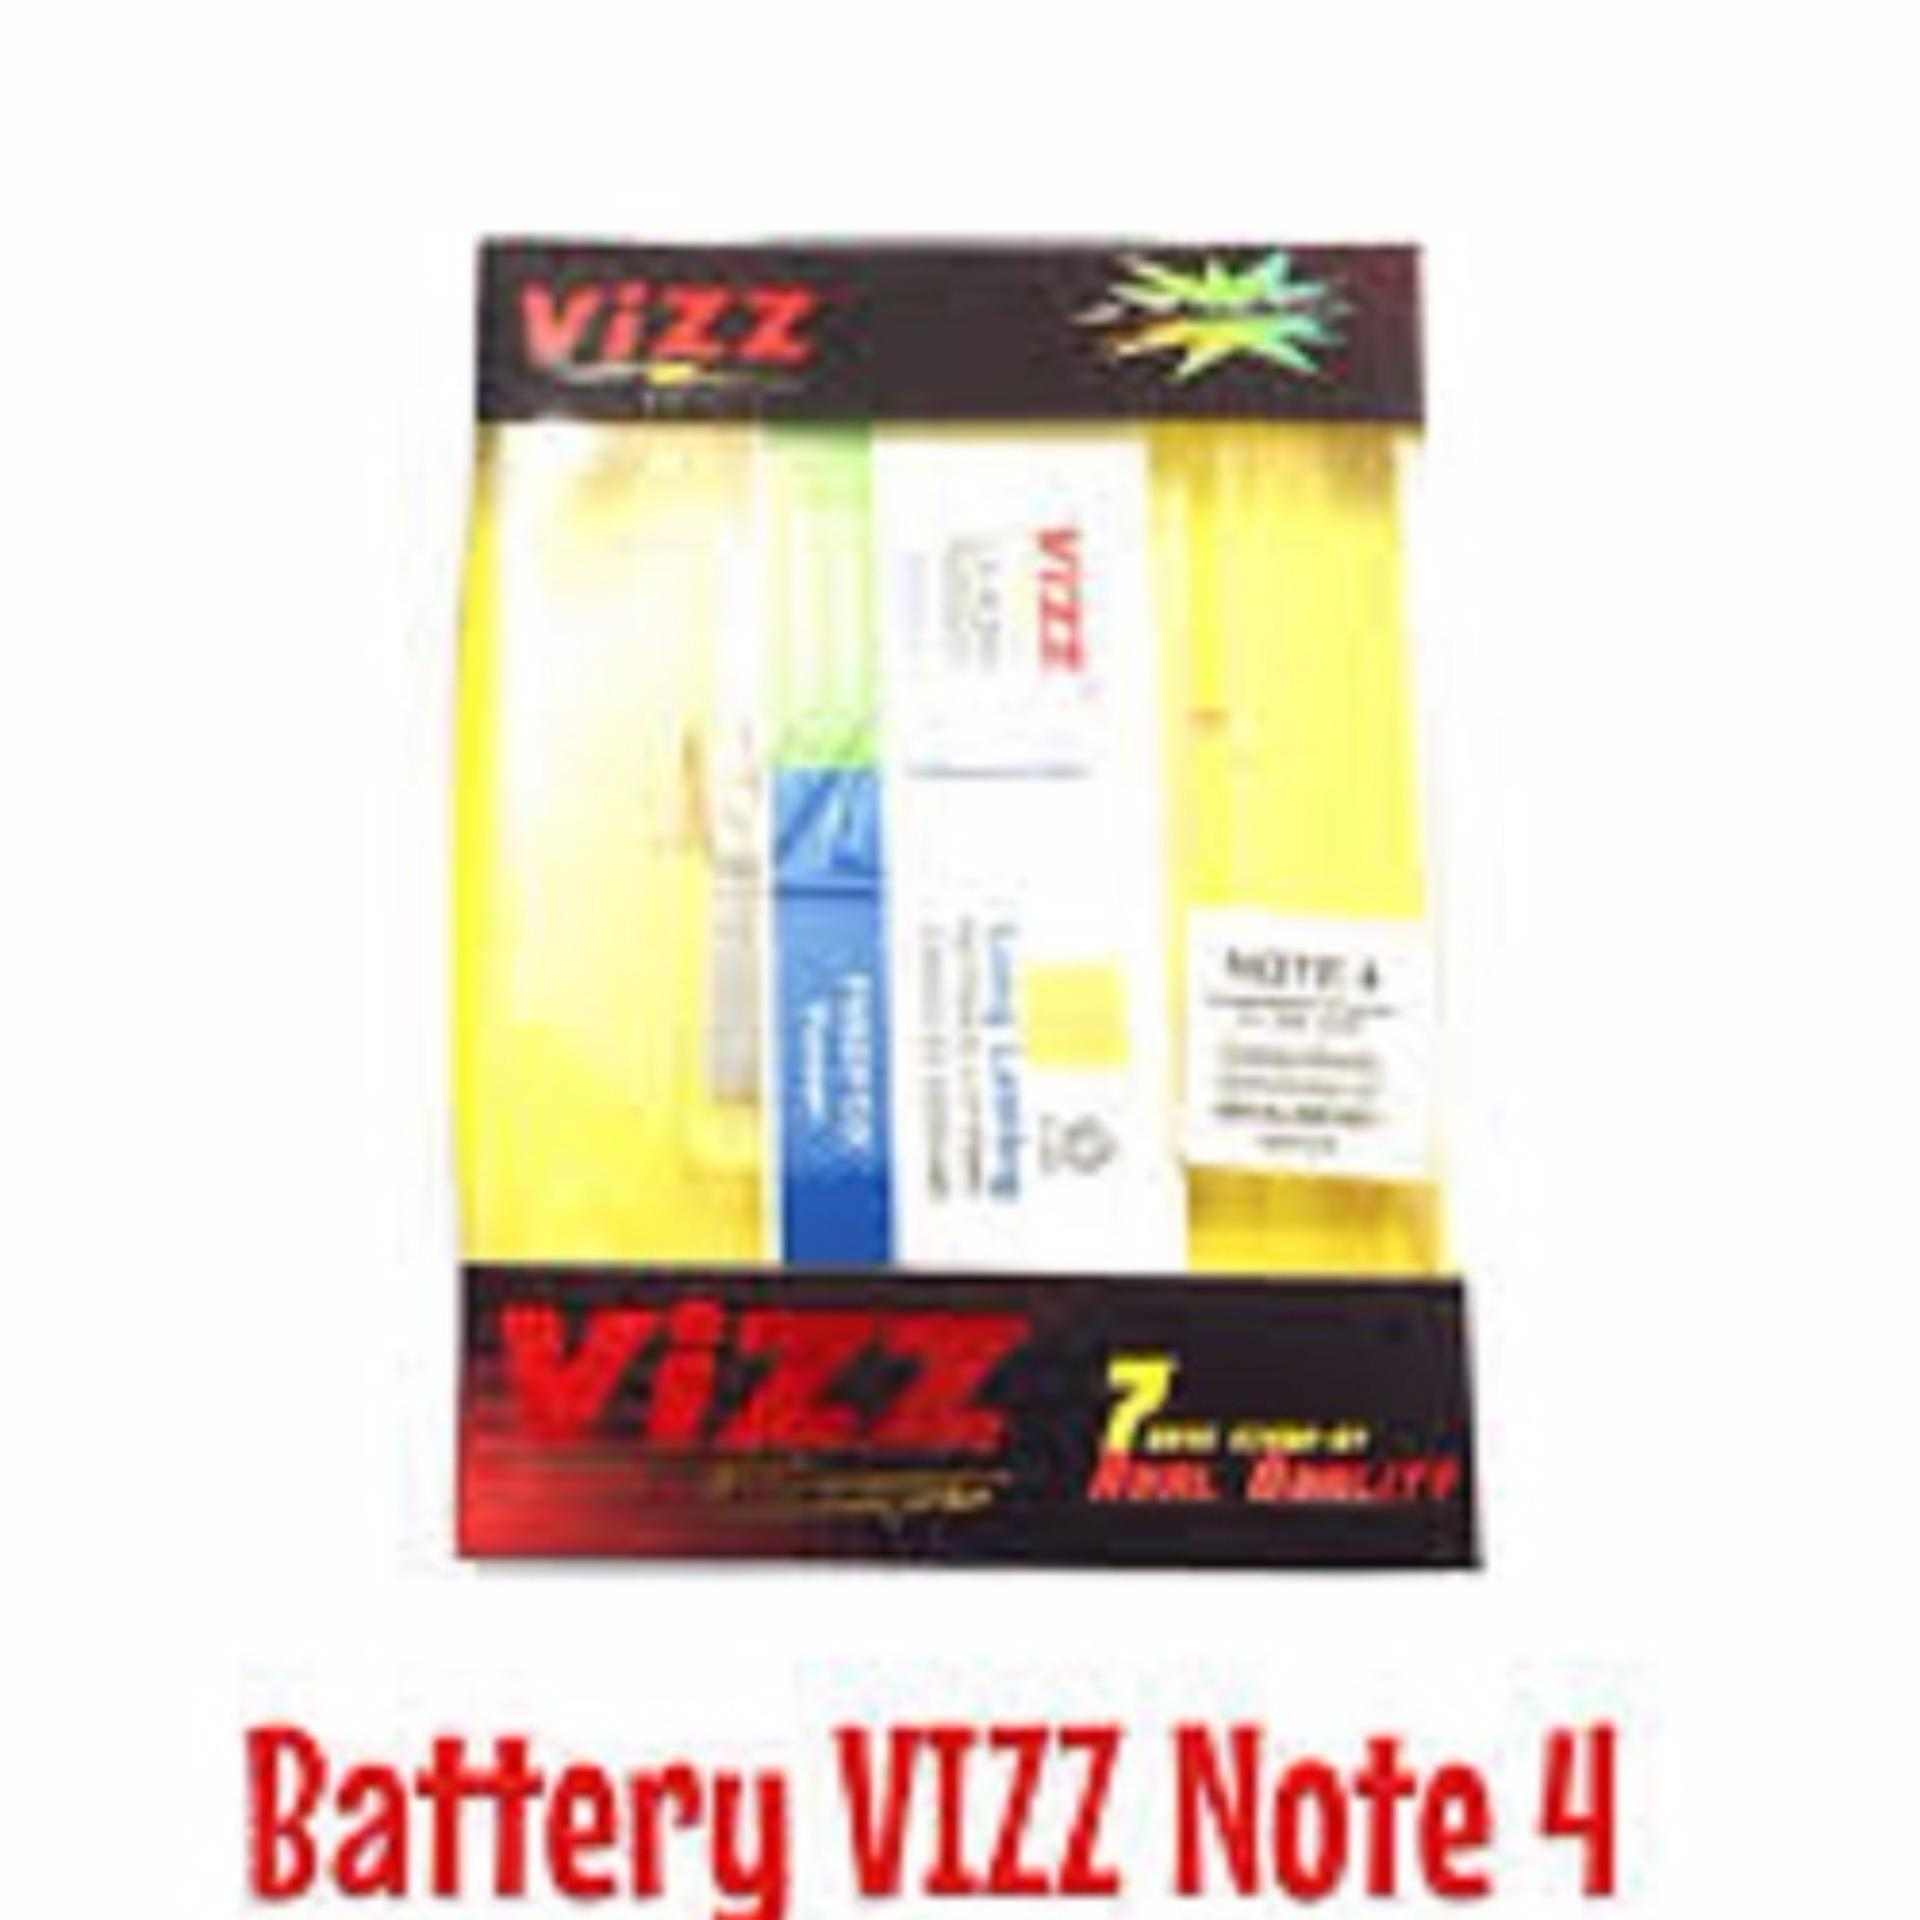 Vizz Battery Batt Baterai Double Power Vizz Samsung Note 4 China Replika Supercopy